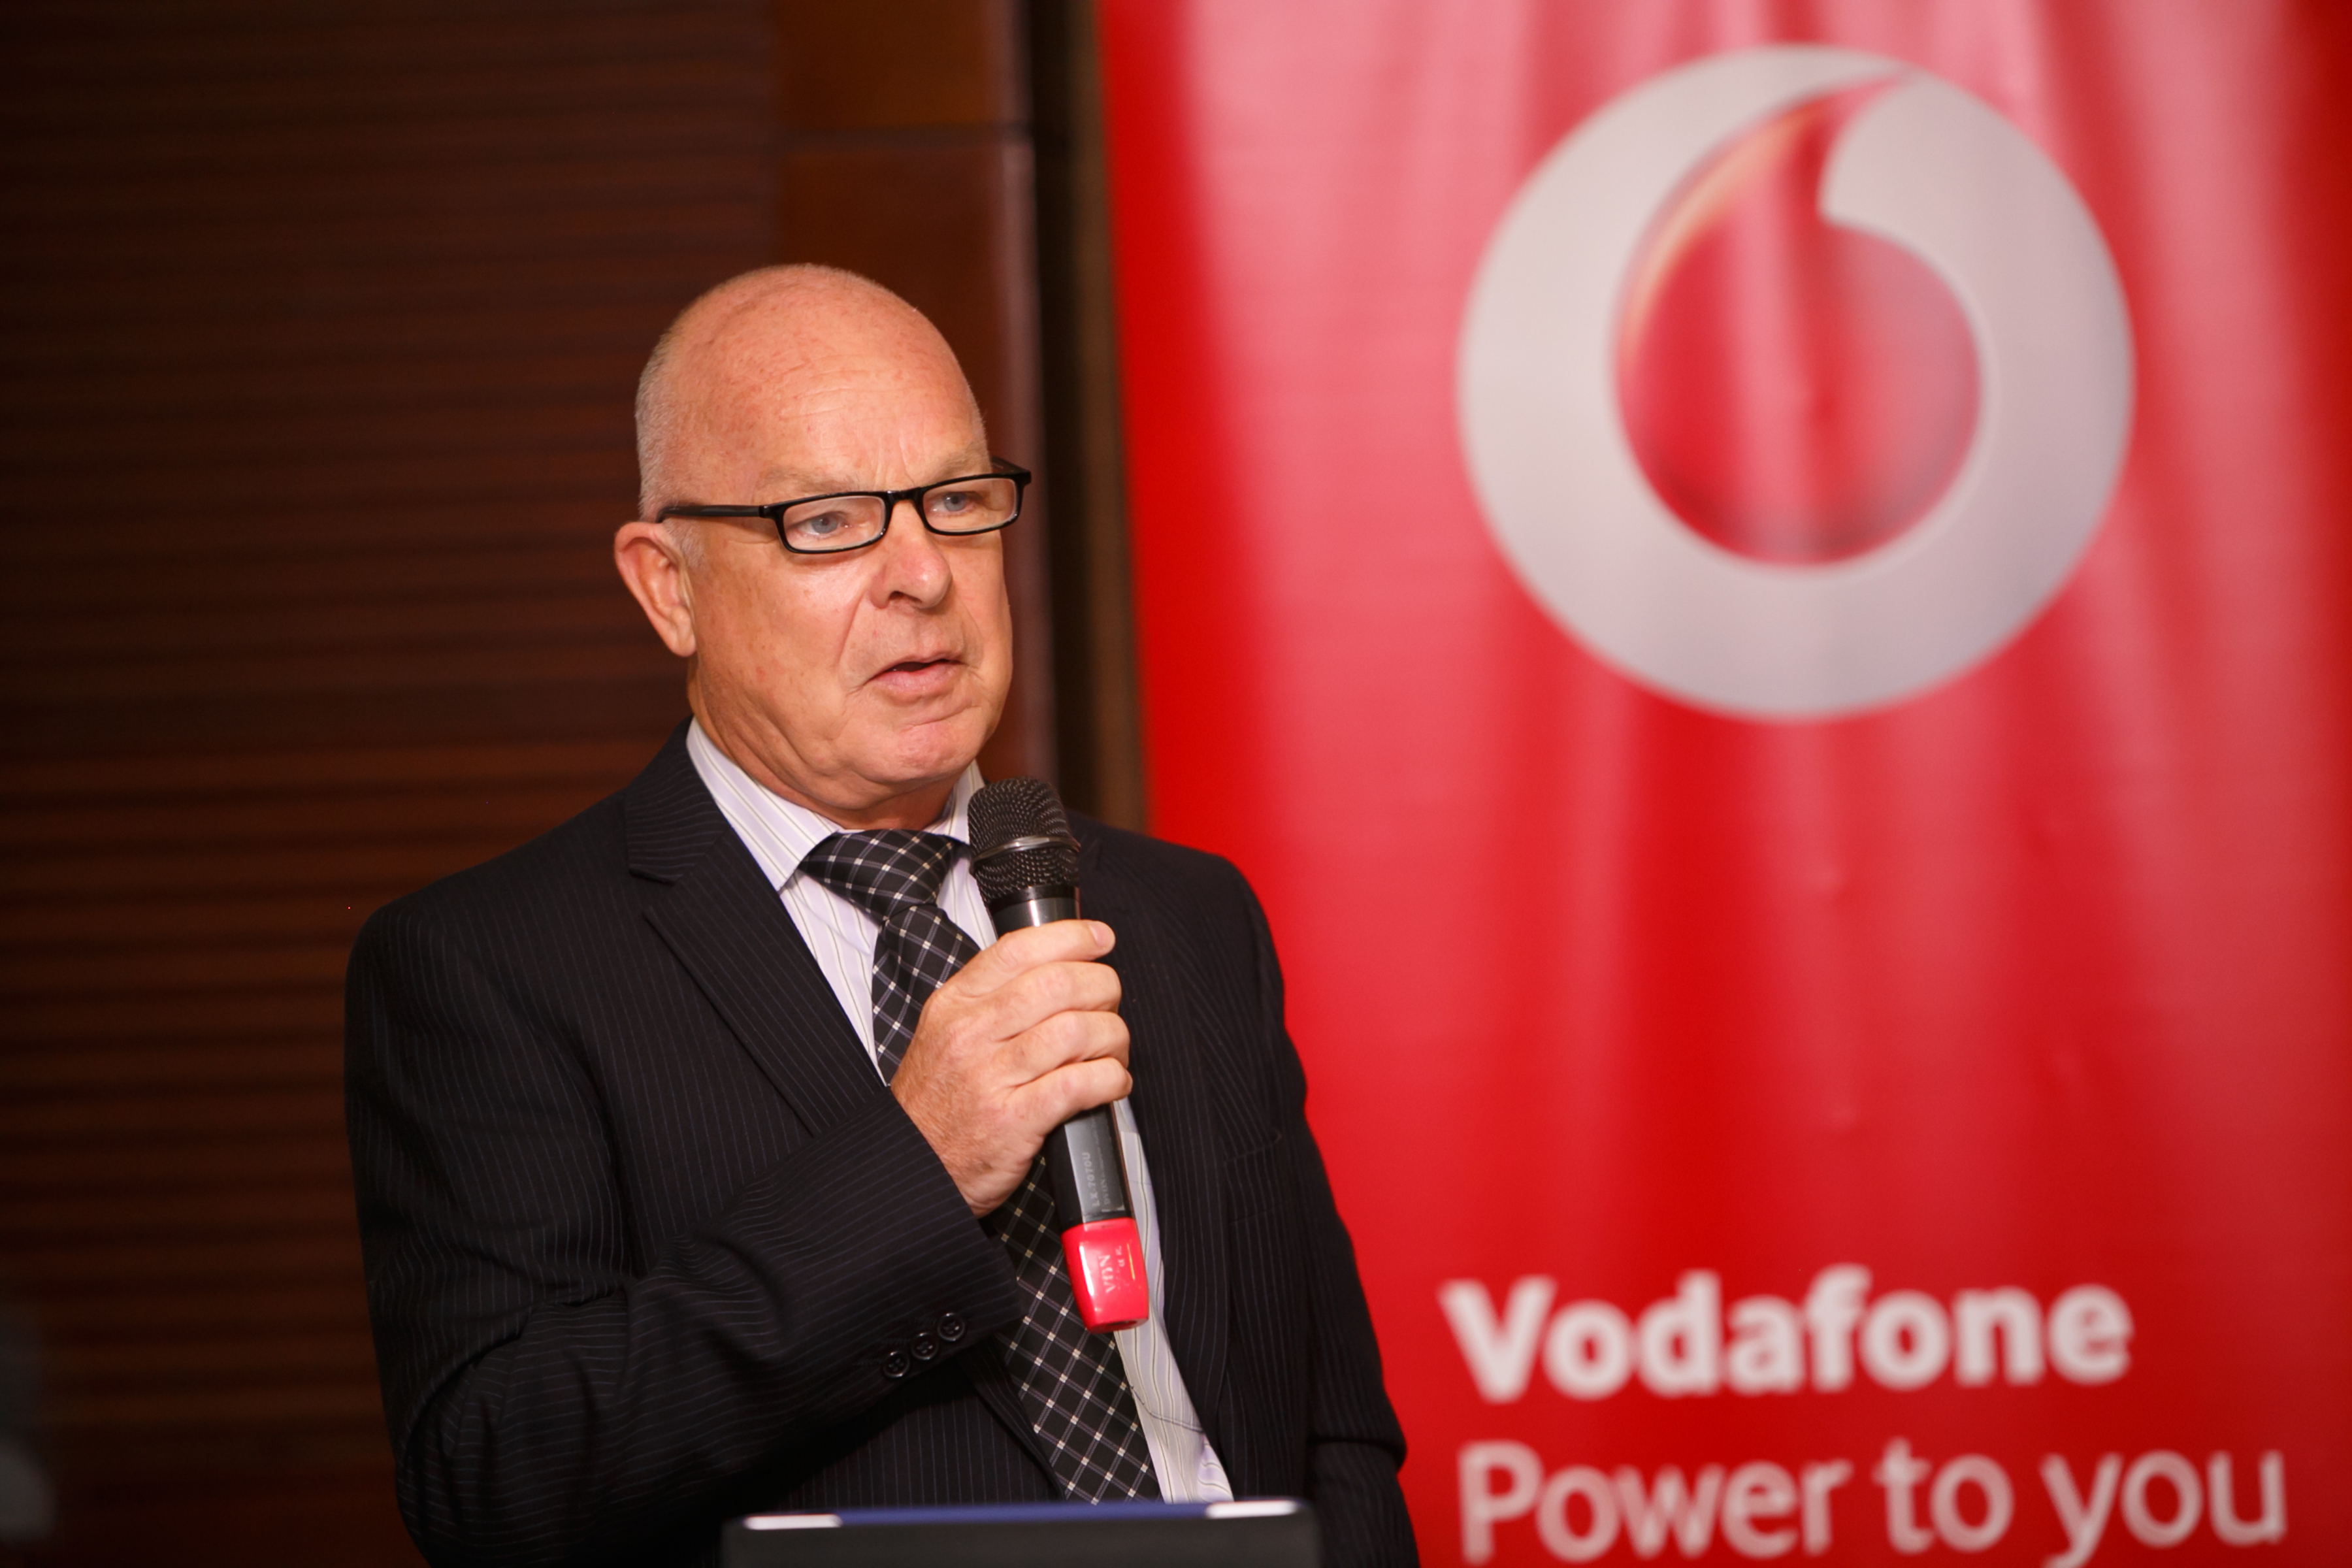 Allan Richardson, CEO Vodafone Uganda speaks at the 3rd Edition of Vodafone PowerTalks held recently at Kampala Serena Hotel.